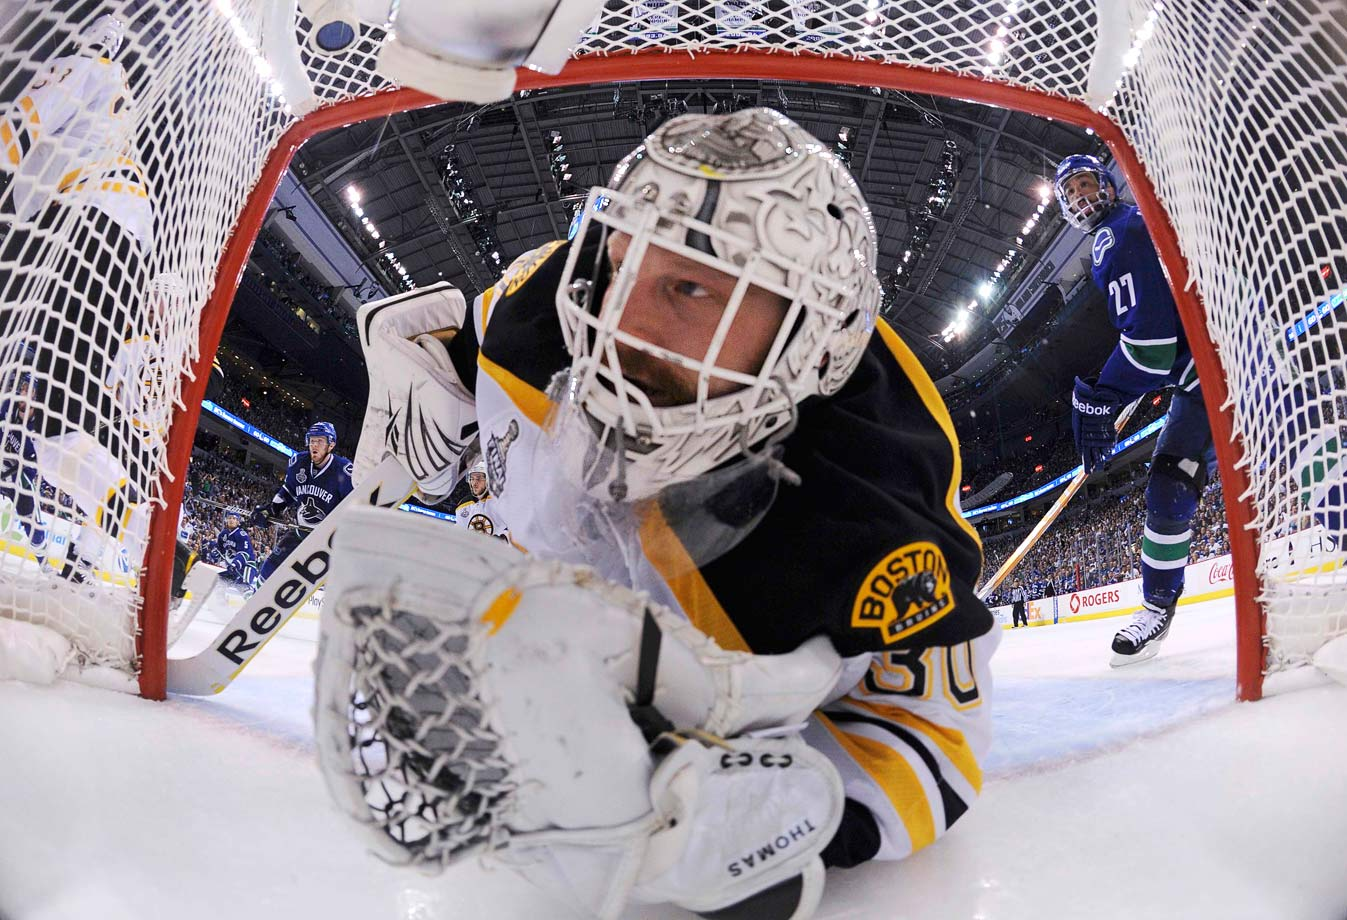 The Bruins' Vezina Trophy-winning goalie figuratively owned his net during the playoffs, stopping 94 percent of the shots he faced and averaging a 1.98 GAA in 25 games. At 37, Thomas became the oldest player to win the Conn Smythe Trophy and Boston won its first Stanley Cup since 1972.